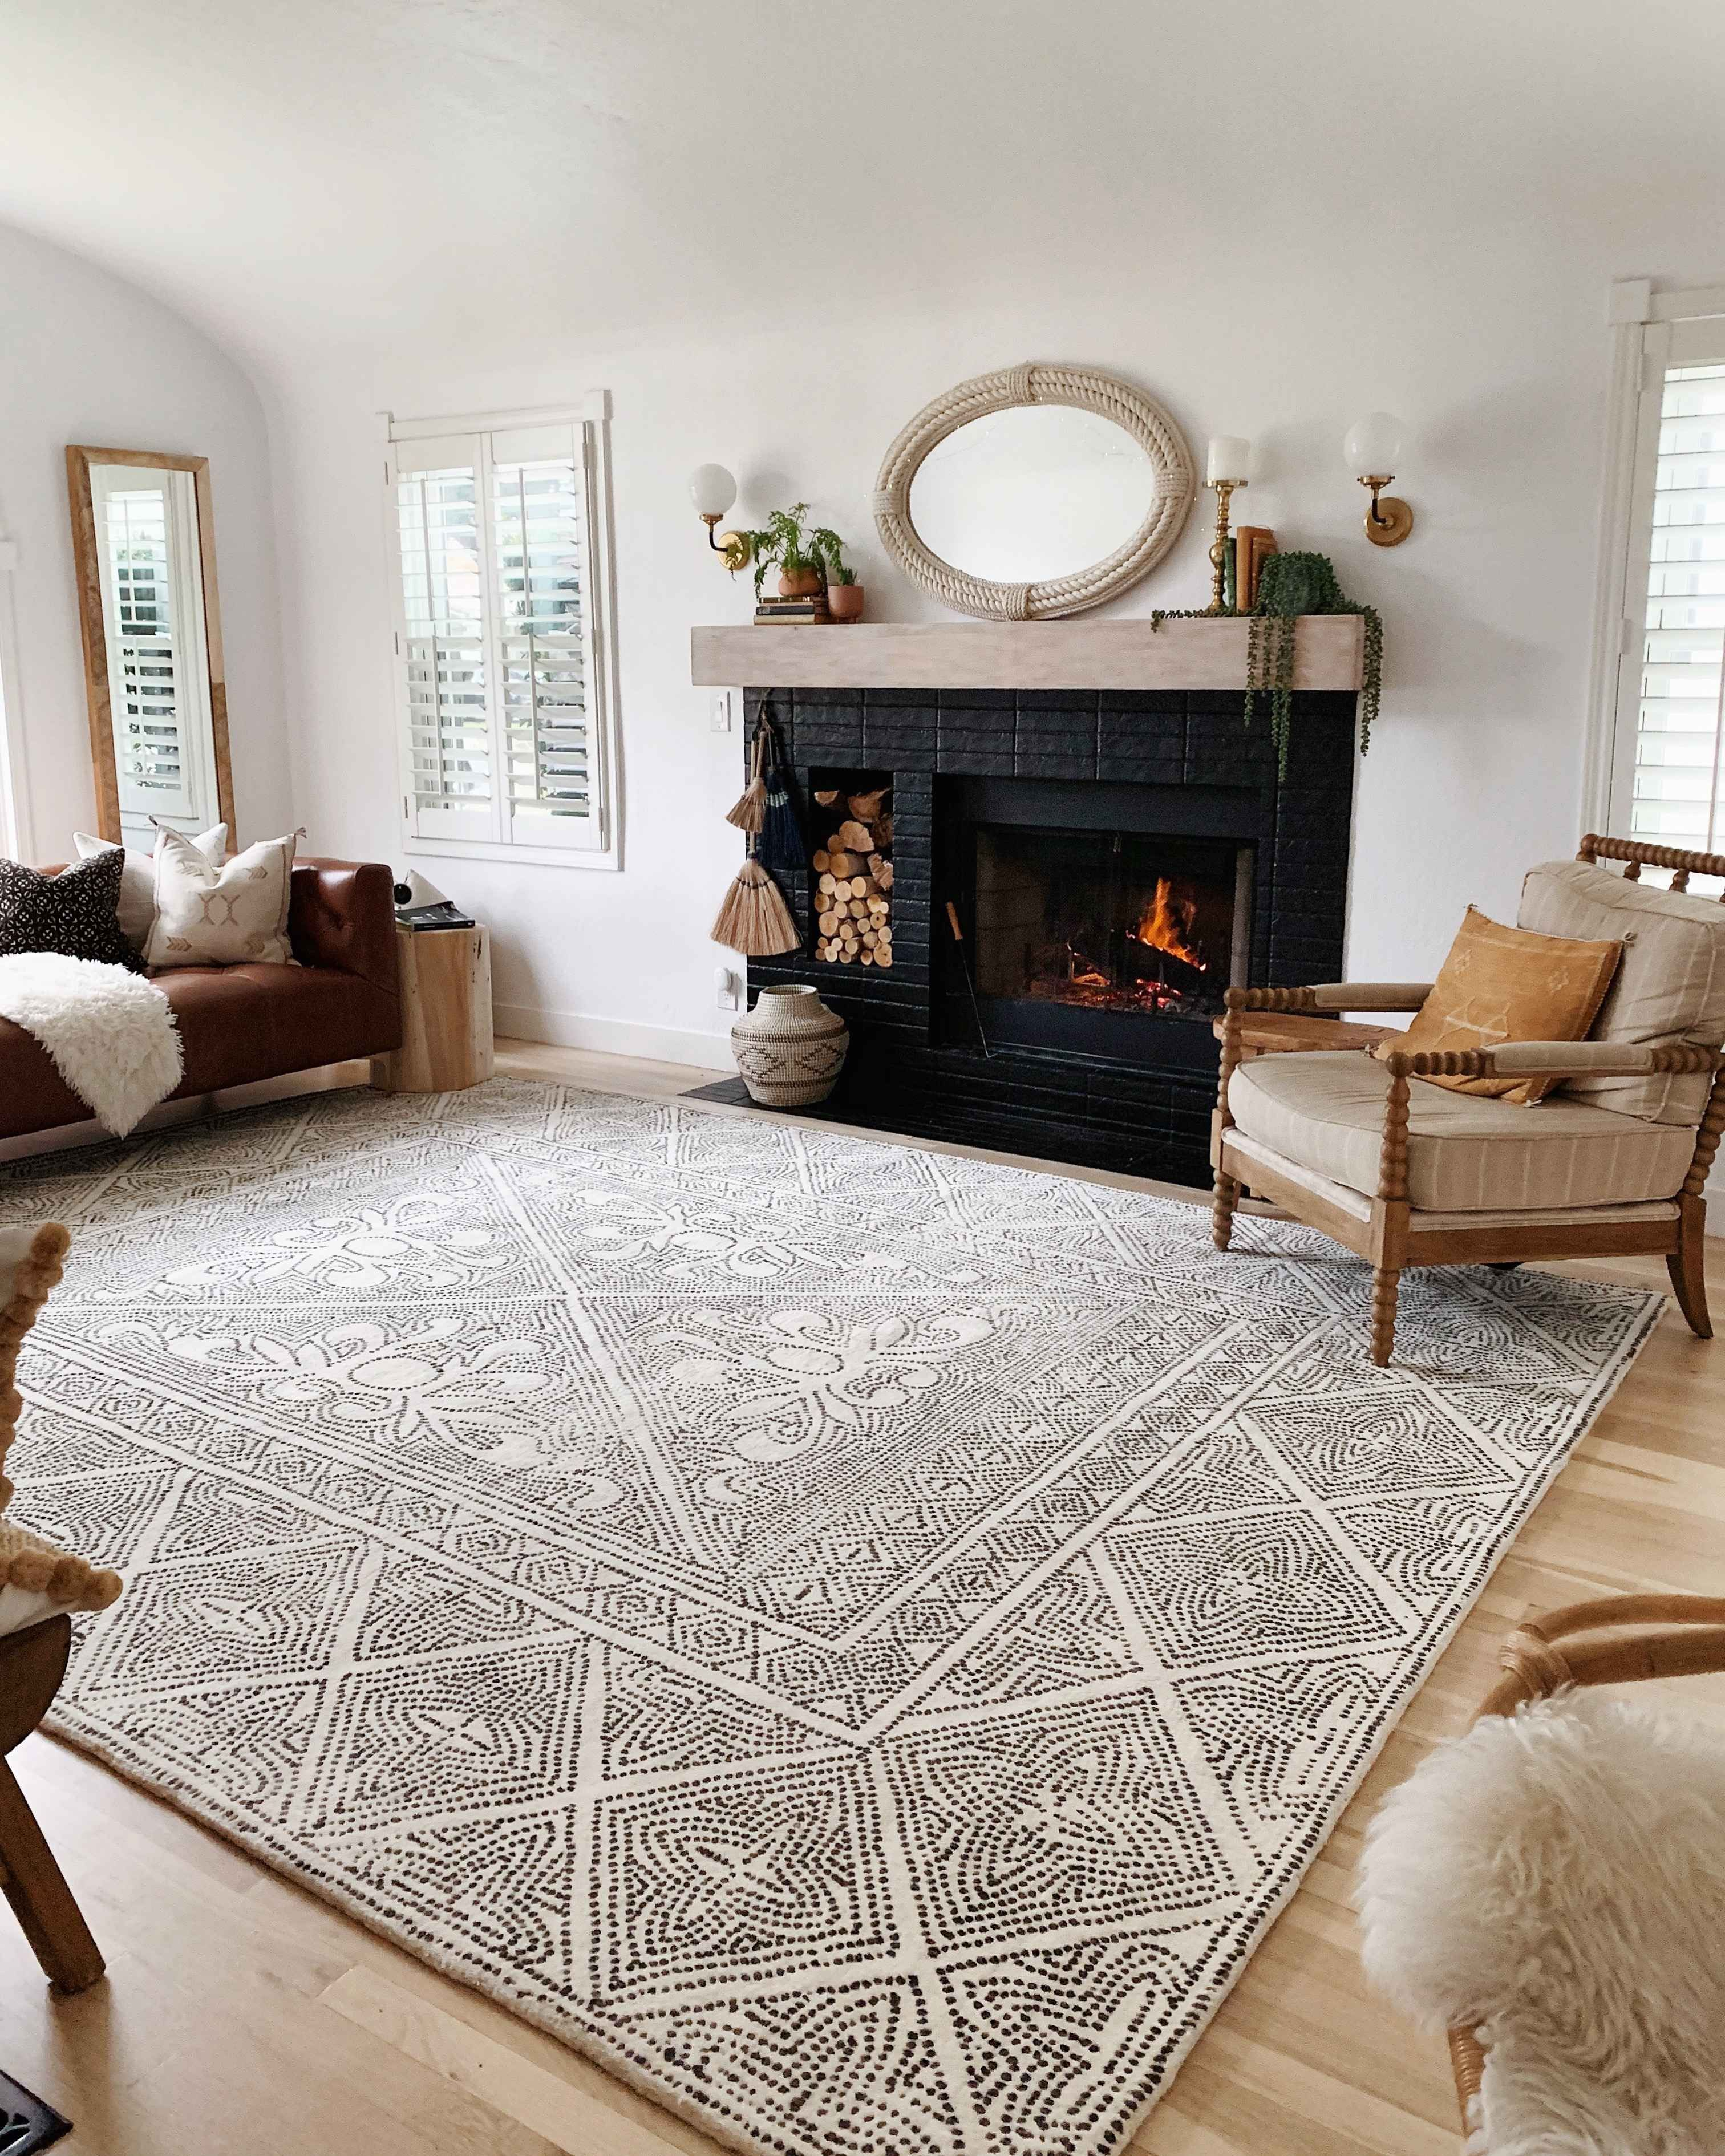 Pin By Susan Miner Interior Designs On Rugs In 2020 Round Carpet Living Room Rugs In Living Room Home Decor